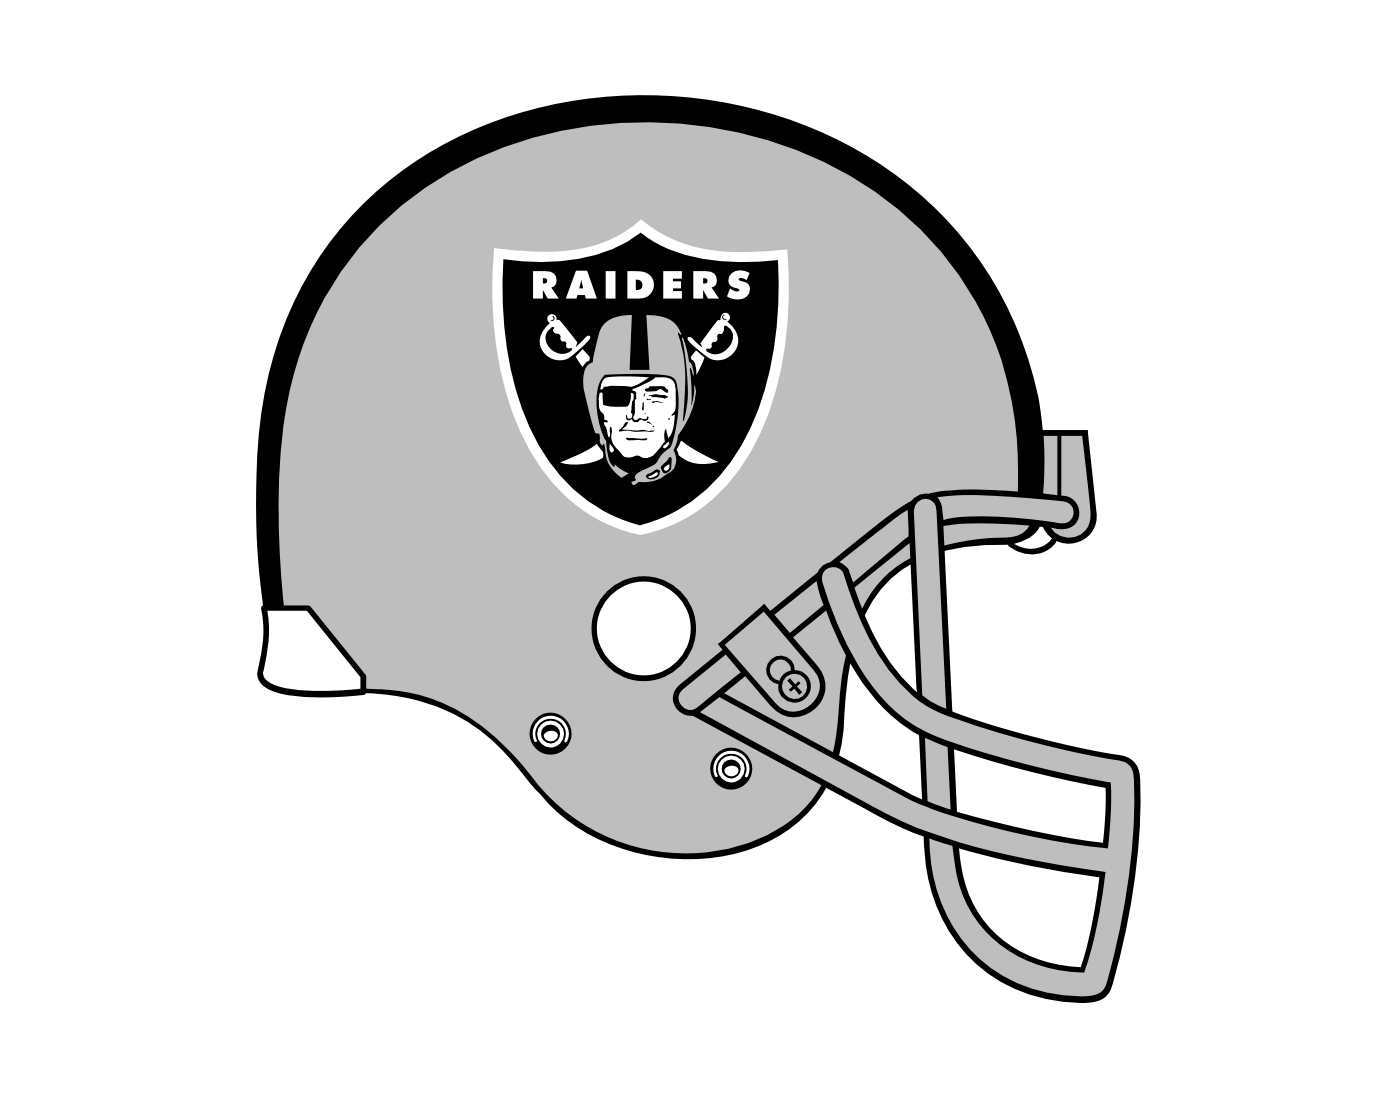 Oakland Raiders Logo Png Transparent Svg Vector Freebie Supply